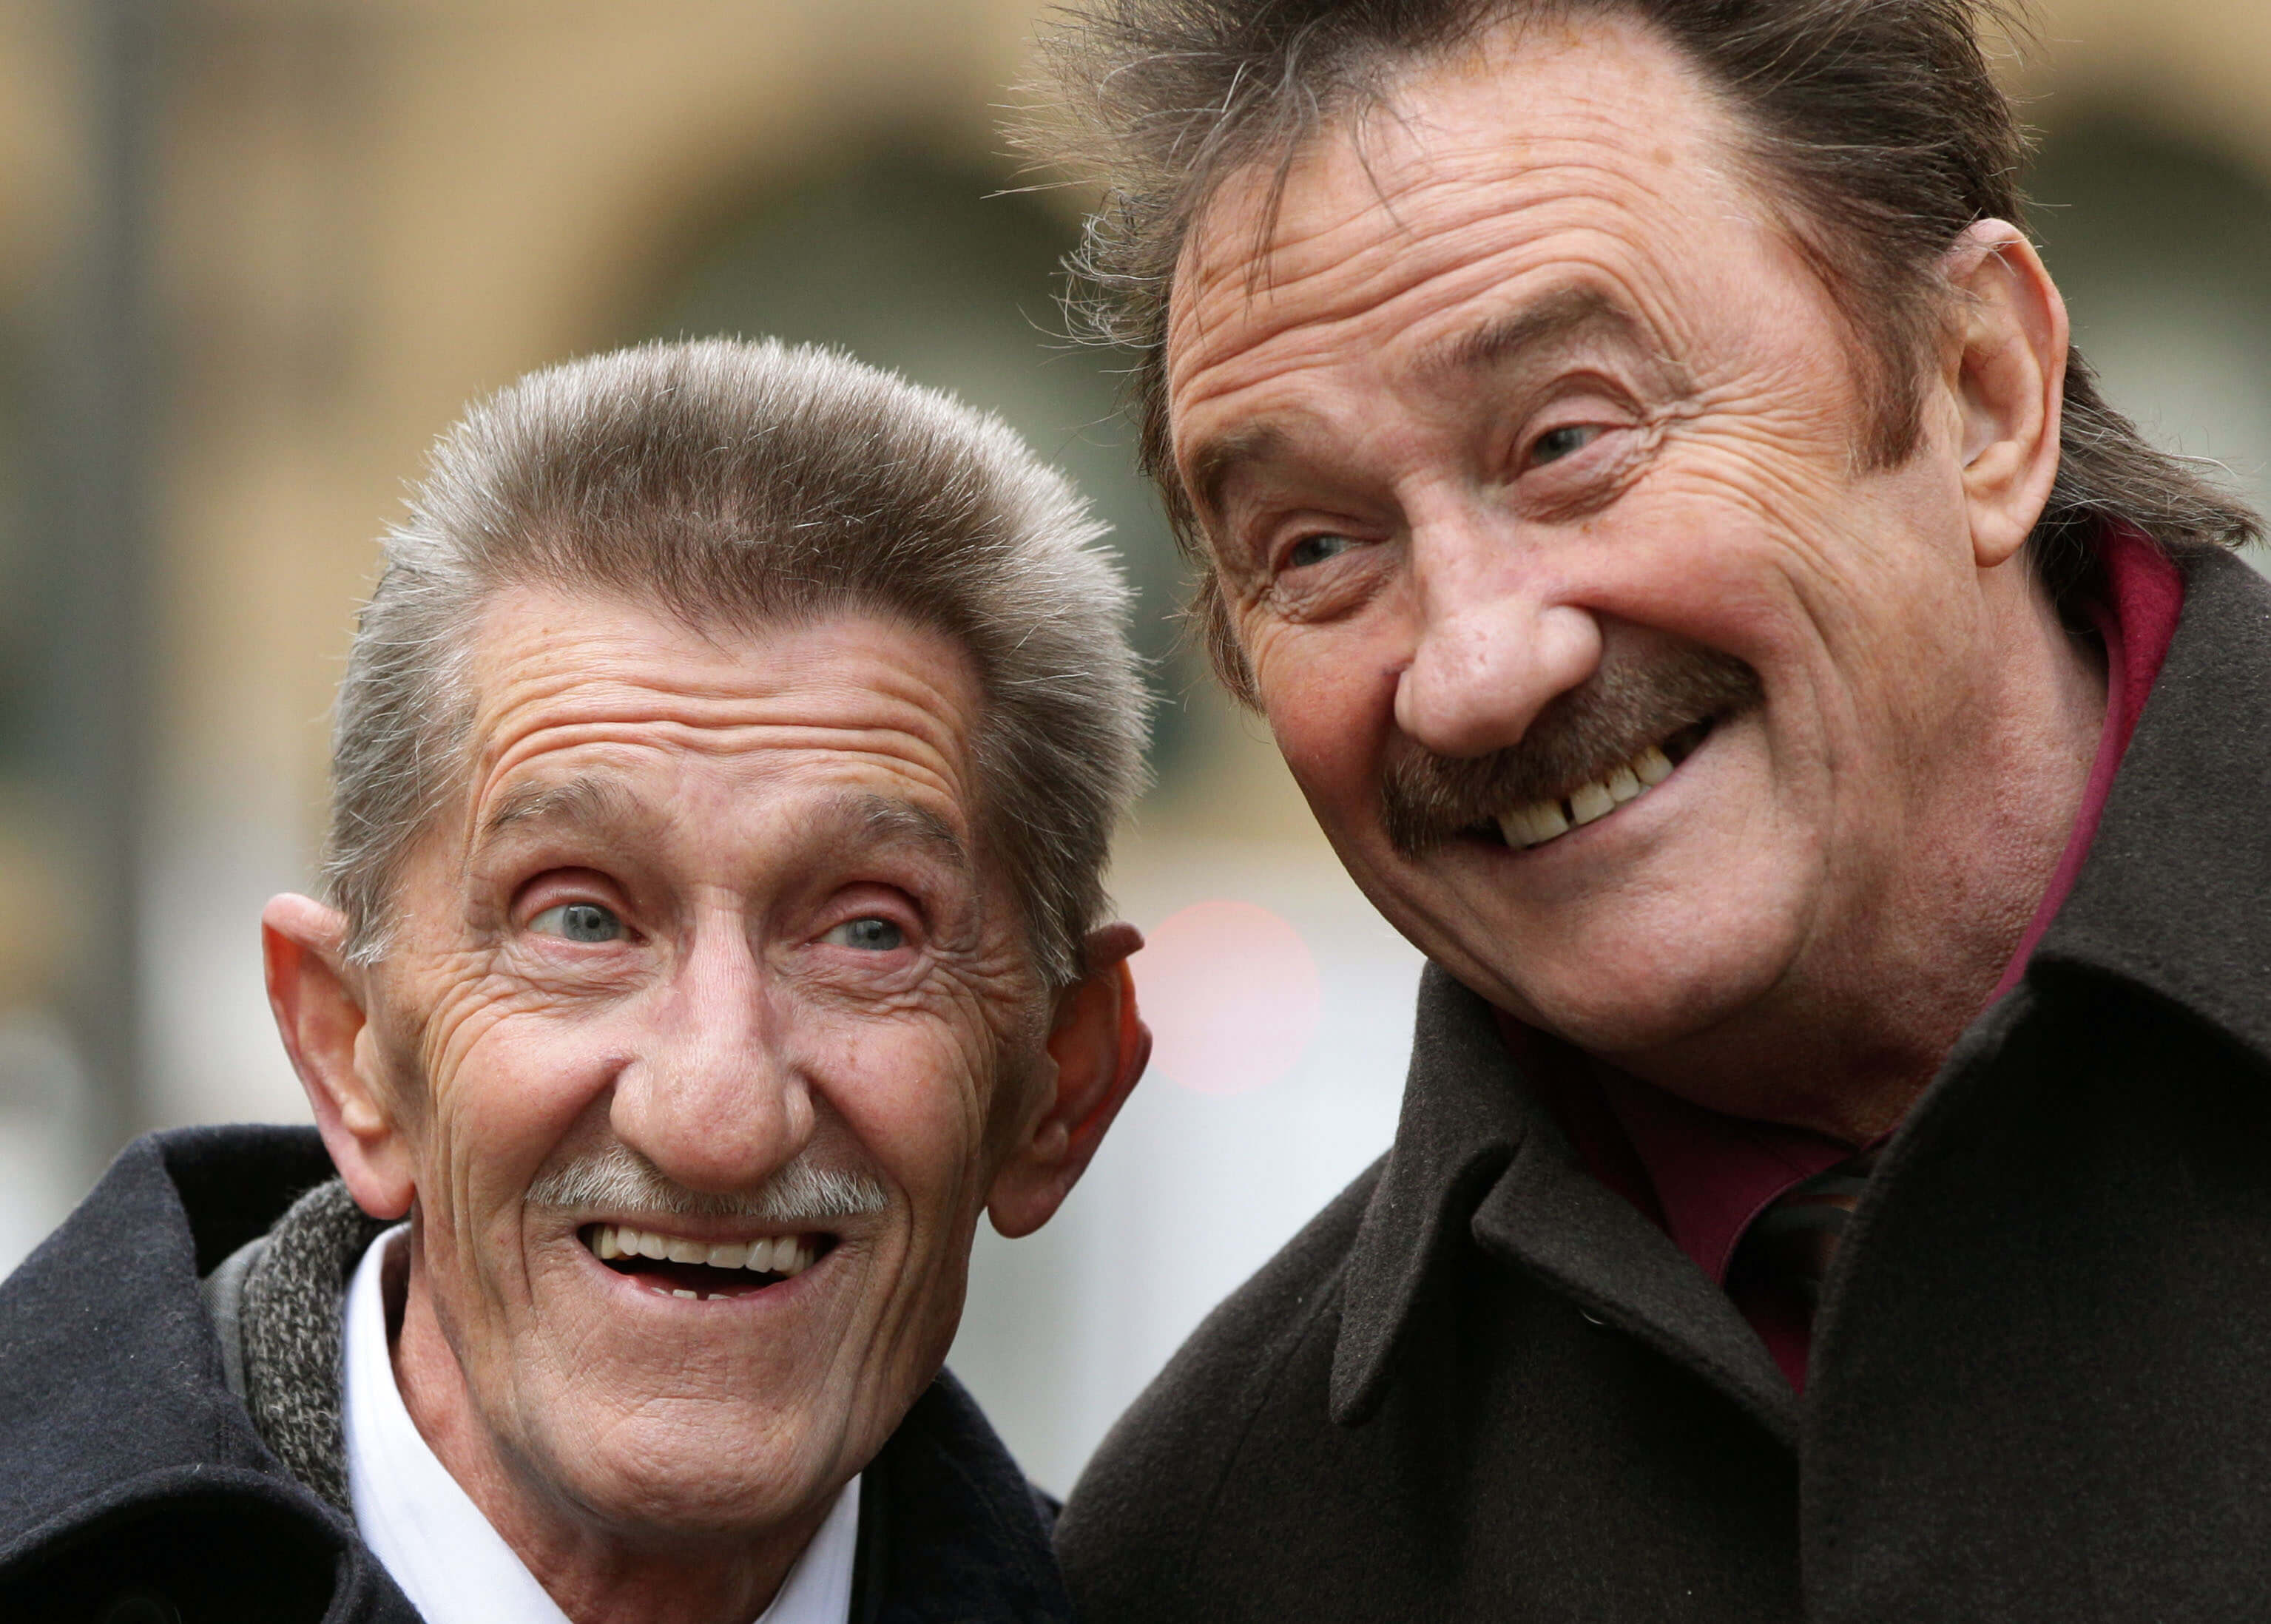 Could The Chuckle Brothers Be The New Face Of The Great British Bake Off? chuckle1